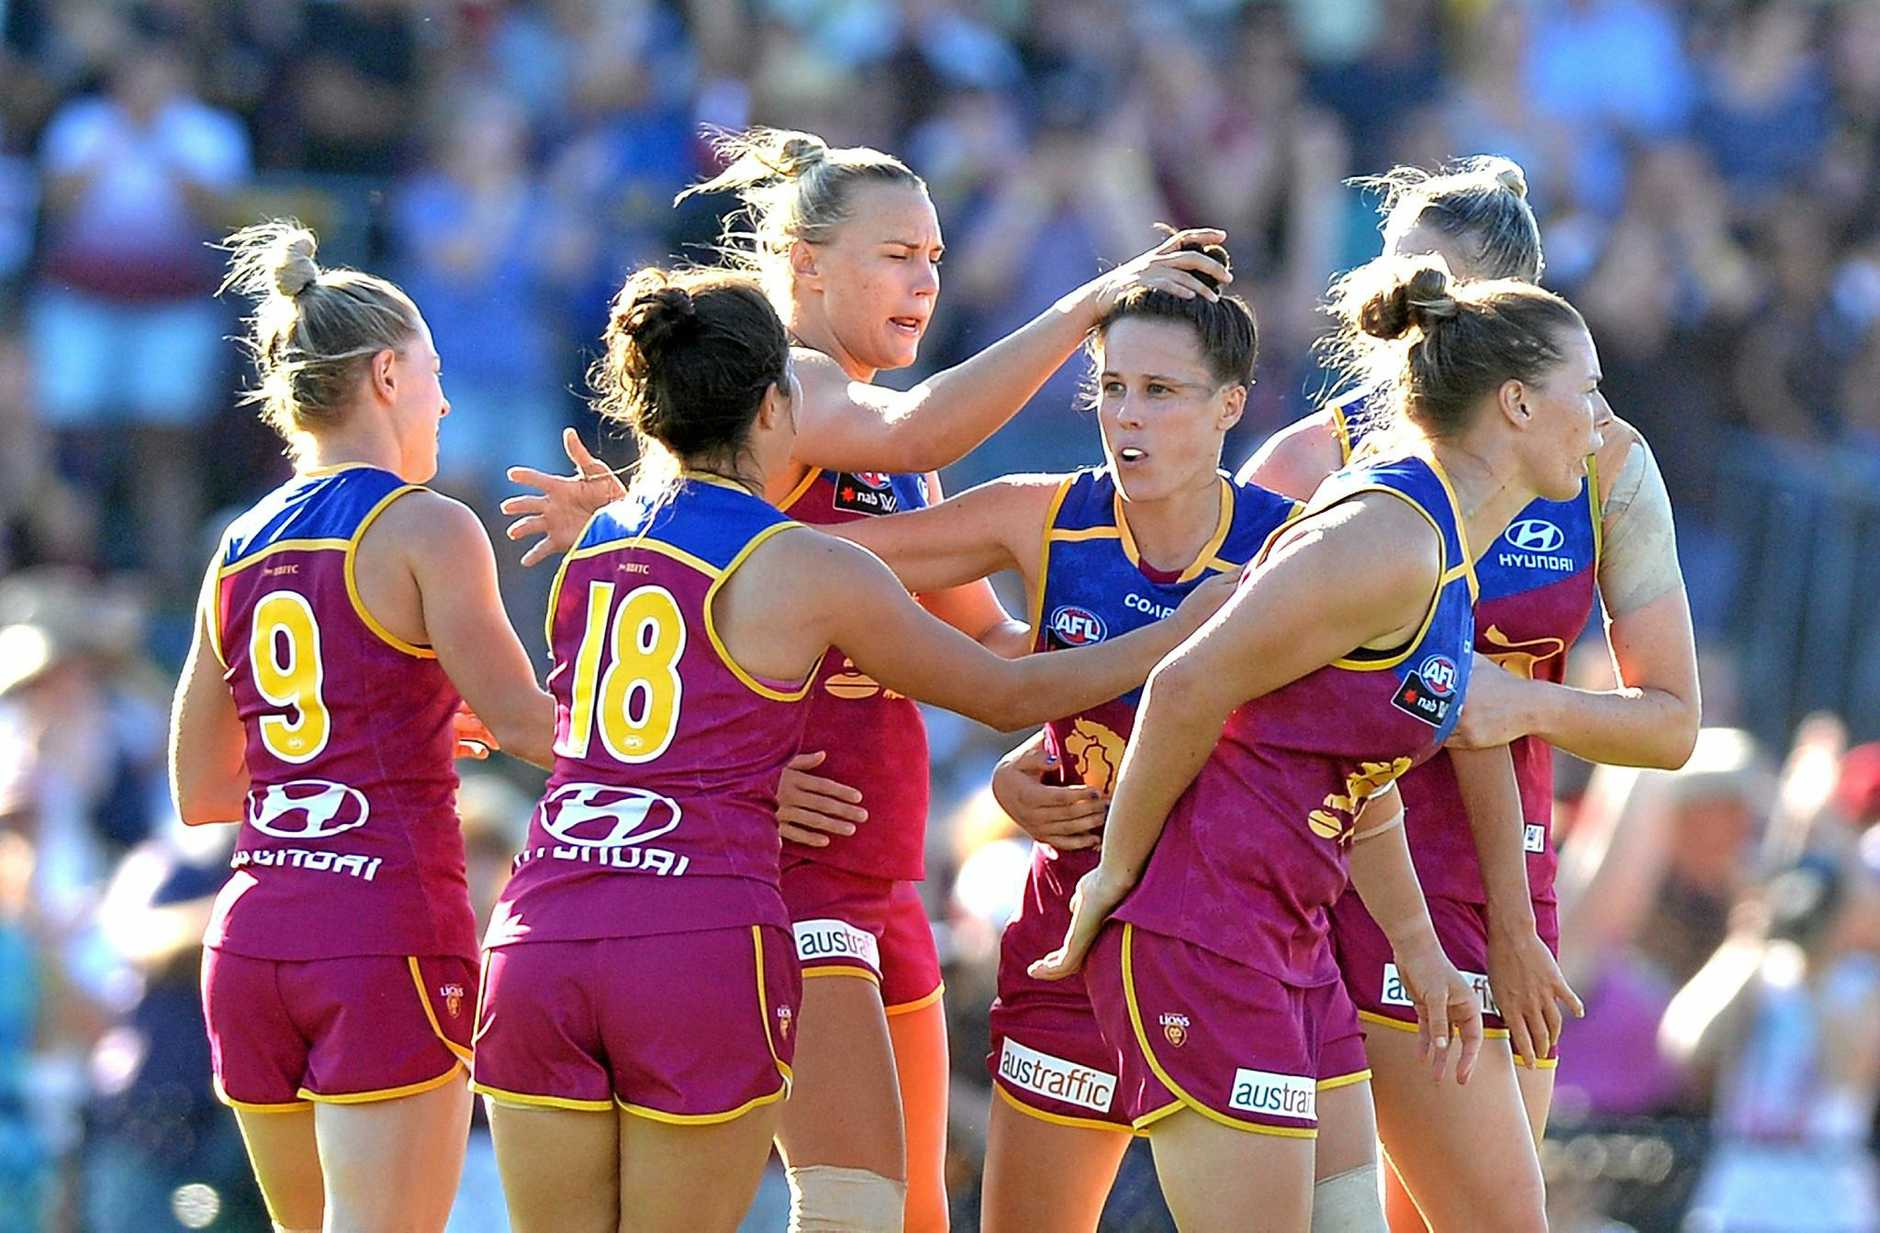 BRISBANE, AUSTRALIA - FEBRUARY 18:  Emma Zielke of the Lions is congratulated by team mates after kicking a goal during the Women's AFL round three match between the Brisbane Lions and the Collingwood Magpies at South Pine Sports Complex on February 18, 2017 in Brisbane, Australia.  (Photo by Bradley Kanaris/AFL Media/Getty Images)